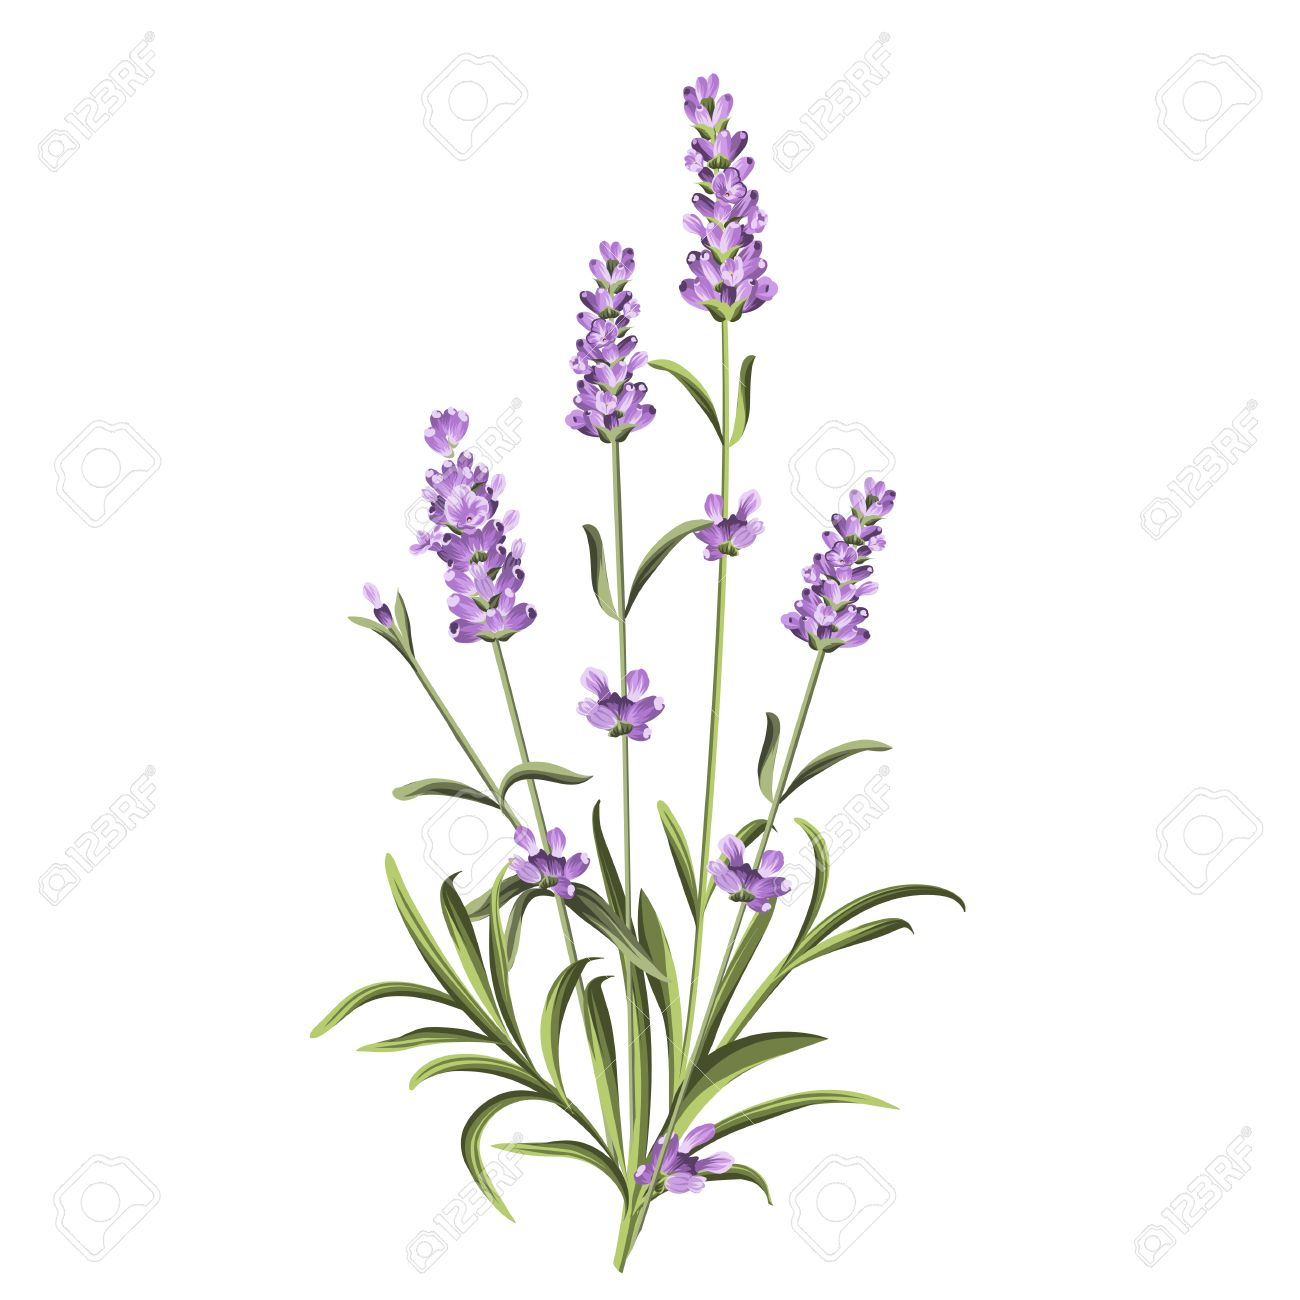 Lavender flowers elements. Botanical illustration. Collection of lavender flowers on a white background. Lavender hand drawn. Watercolor lavender set. Lavender flowers isolated on white background. - 54294368